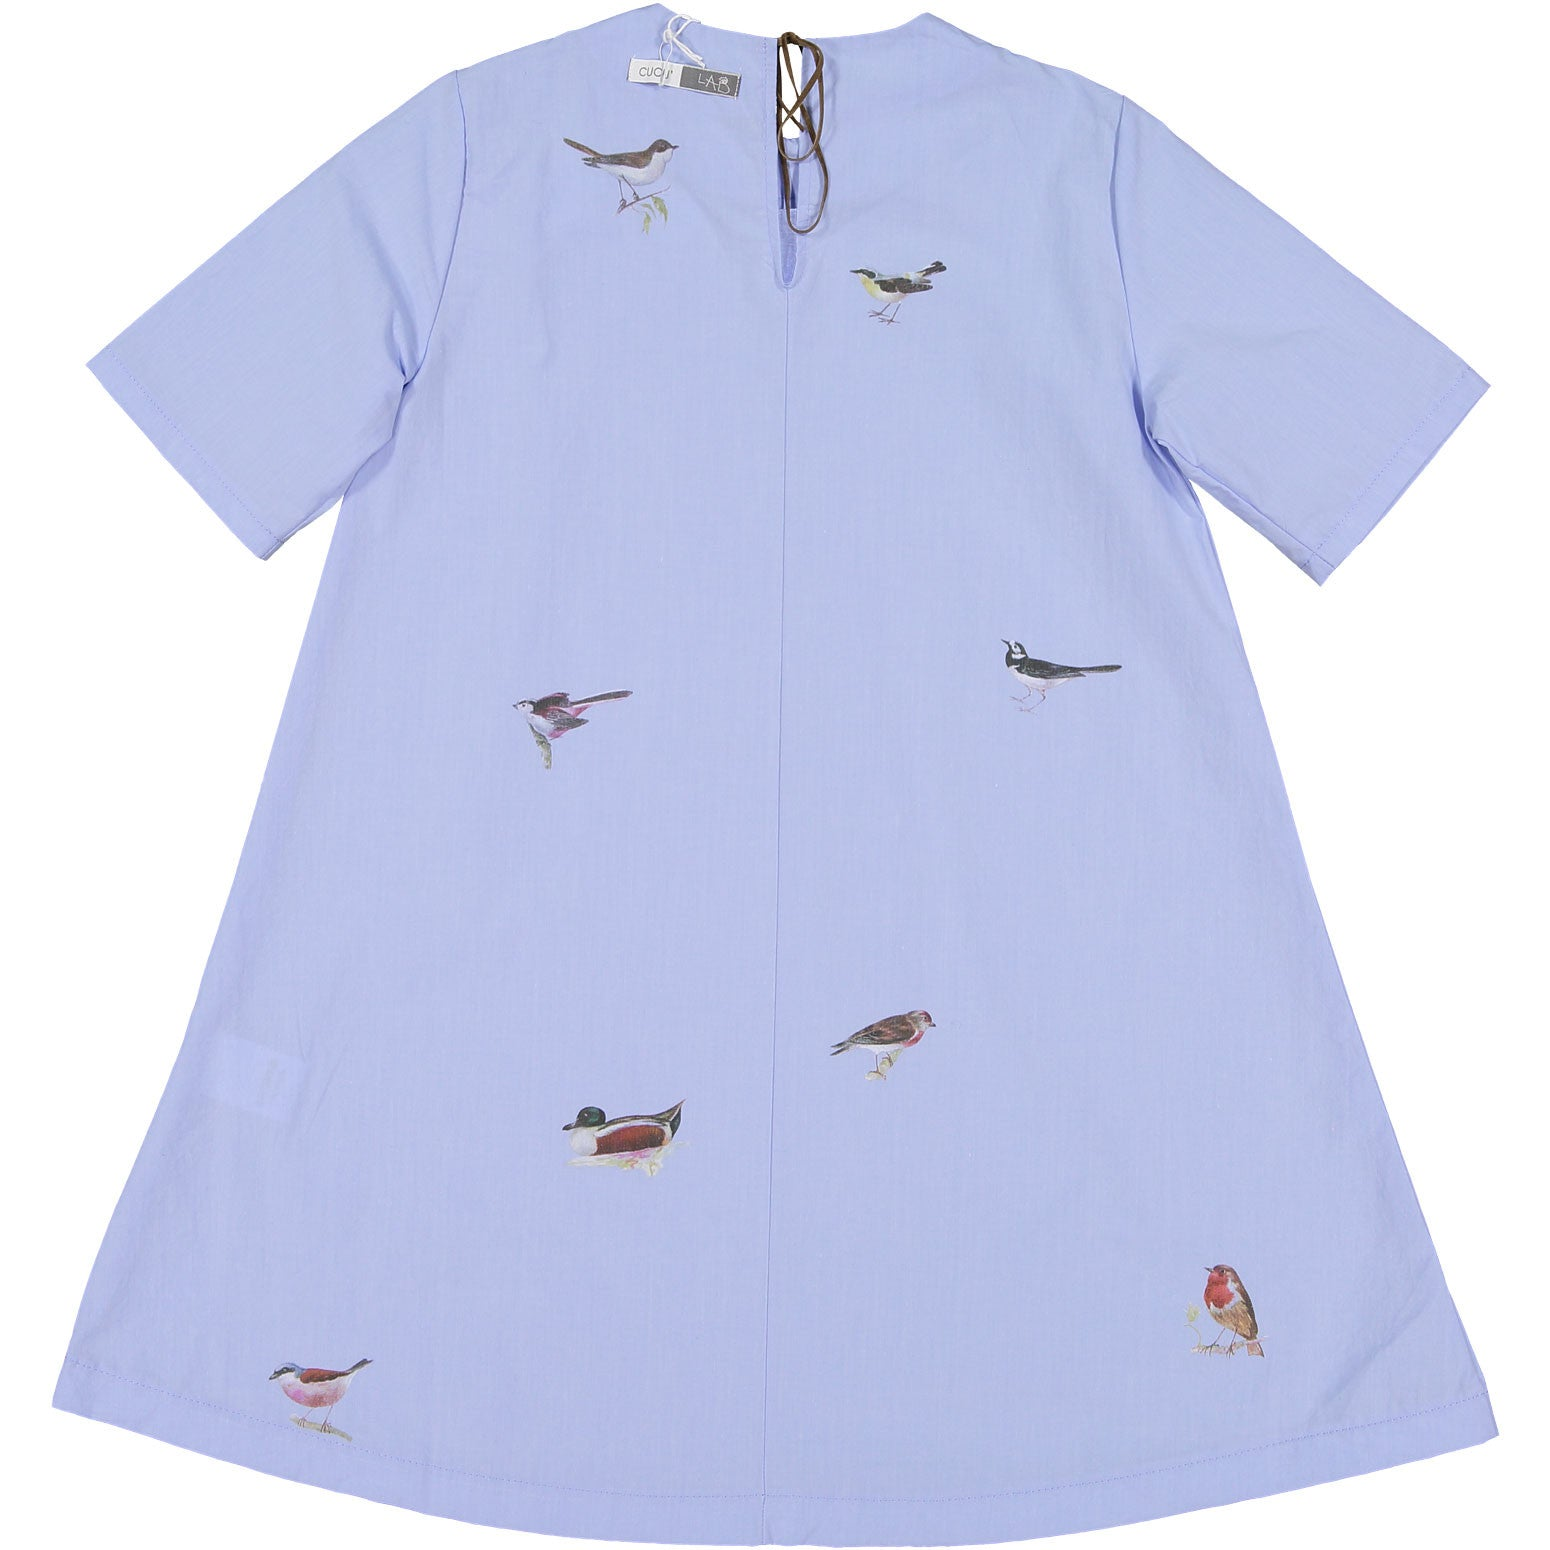 Cuculab Sea Cotton Birds Print Dress - Ladida